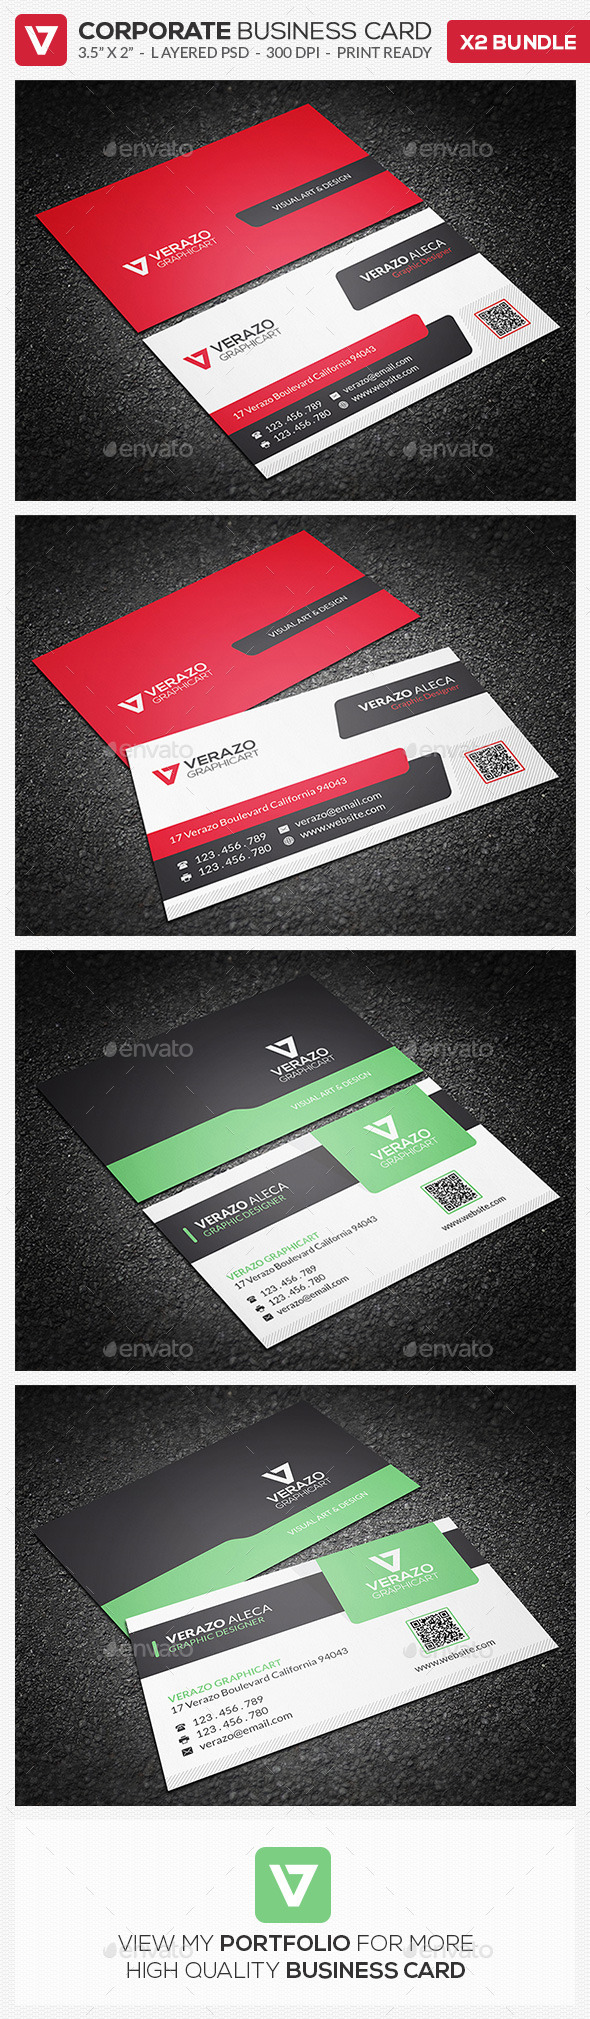 Business Card Bundle 09 - Corporate Business Cards